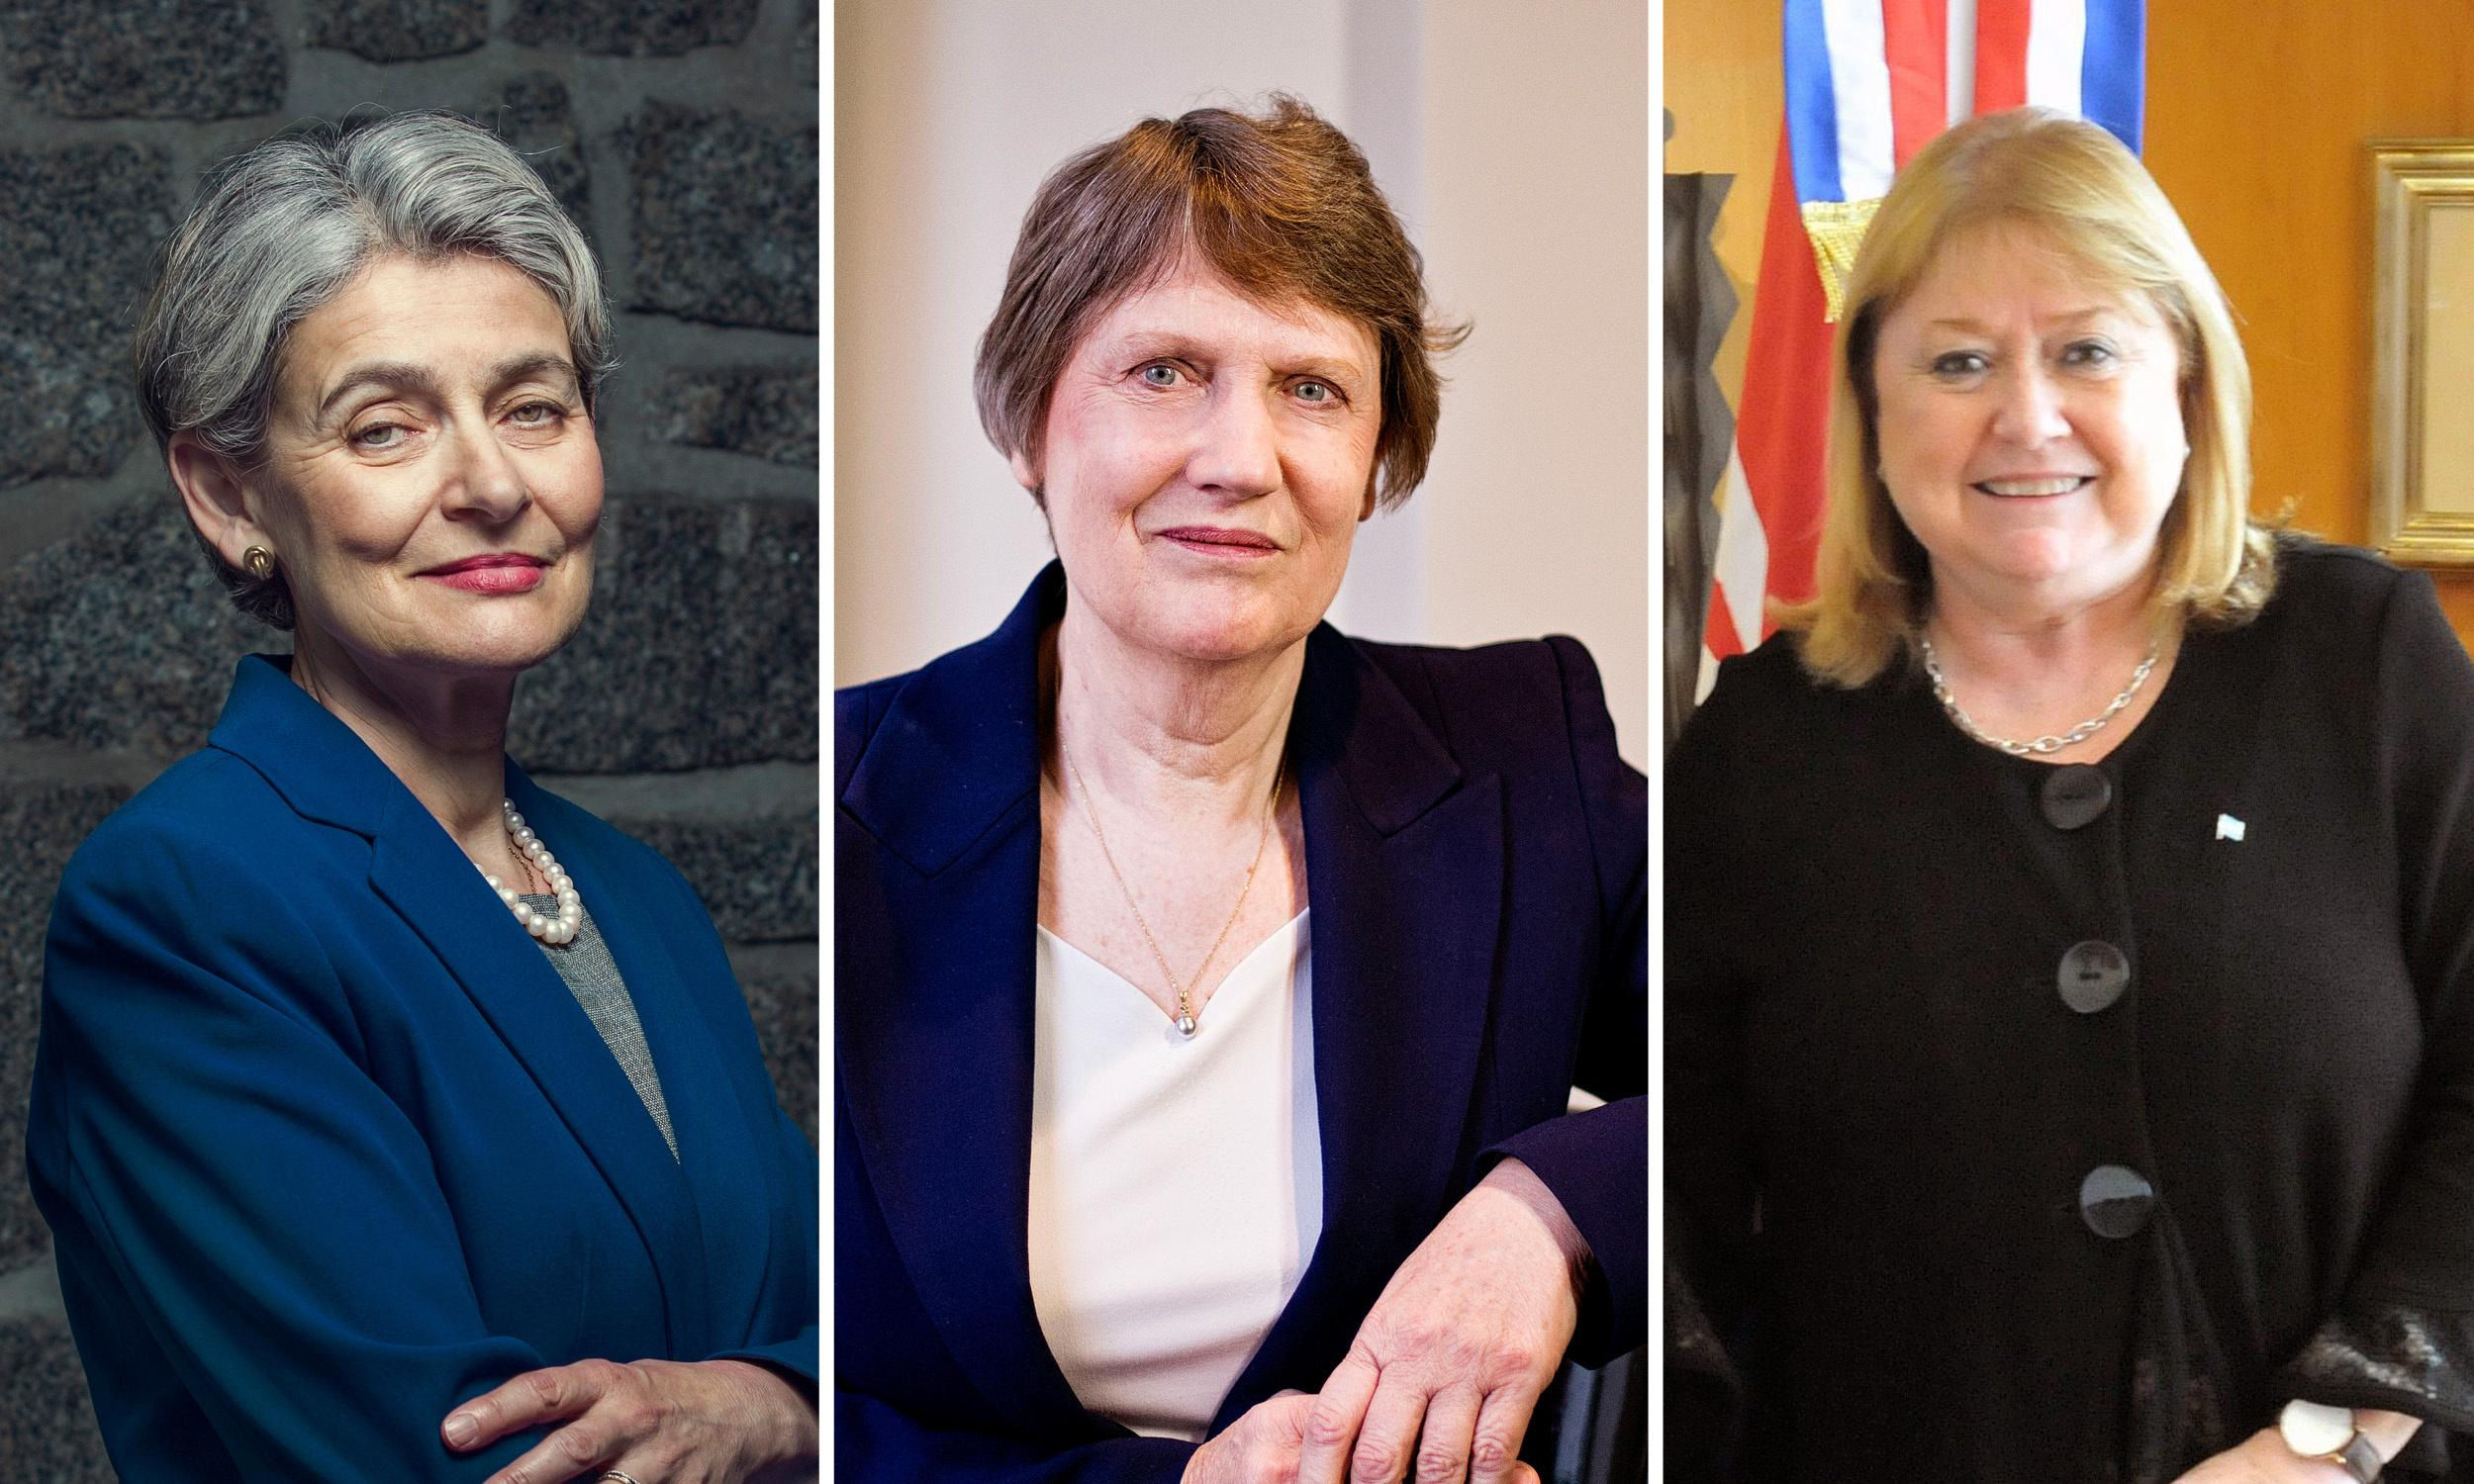 Rise of the 'strongman': Dozens of female world leaders warn women's rights being eroded